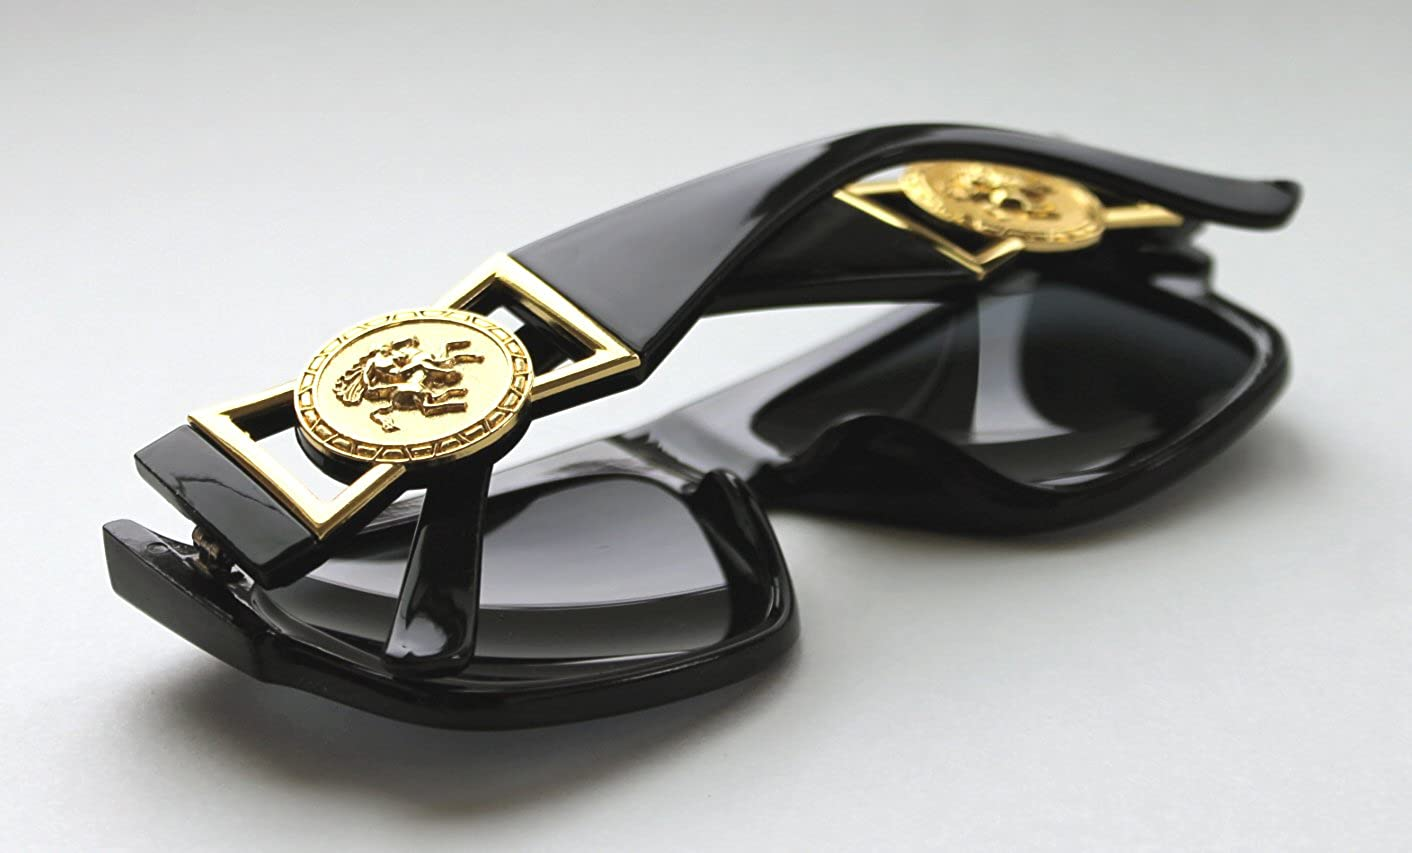 c5ab81e7c10 Amazon.com  MEN S FLAT TOP GOLD COIN DESIGNER HIP HOP VINTAGE 424 RETRO  80 S 90 S (Black Gold